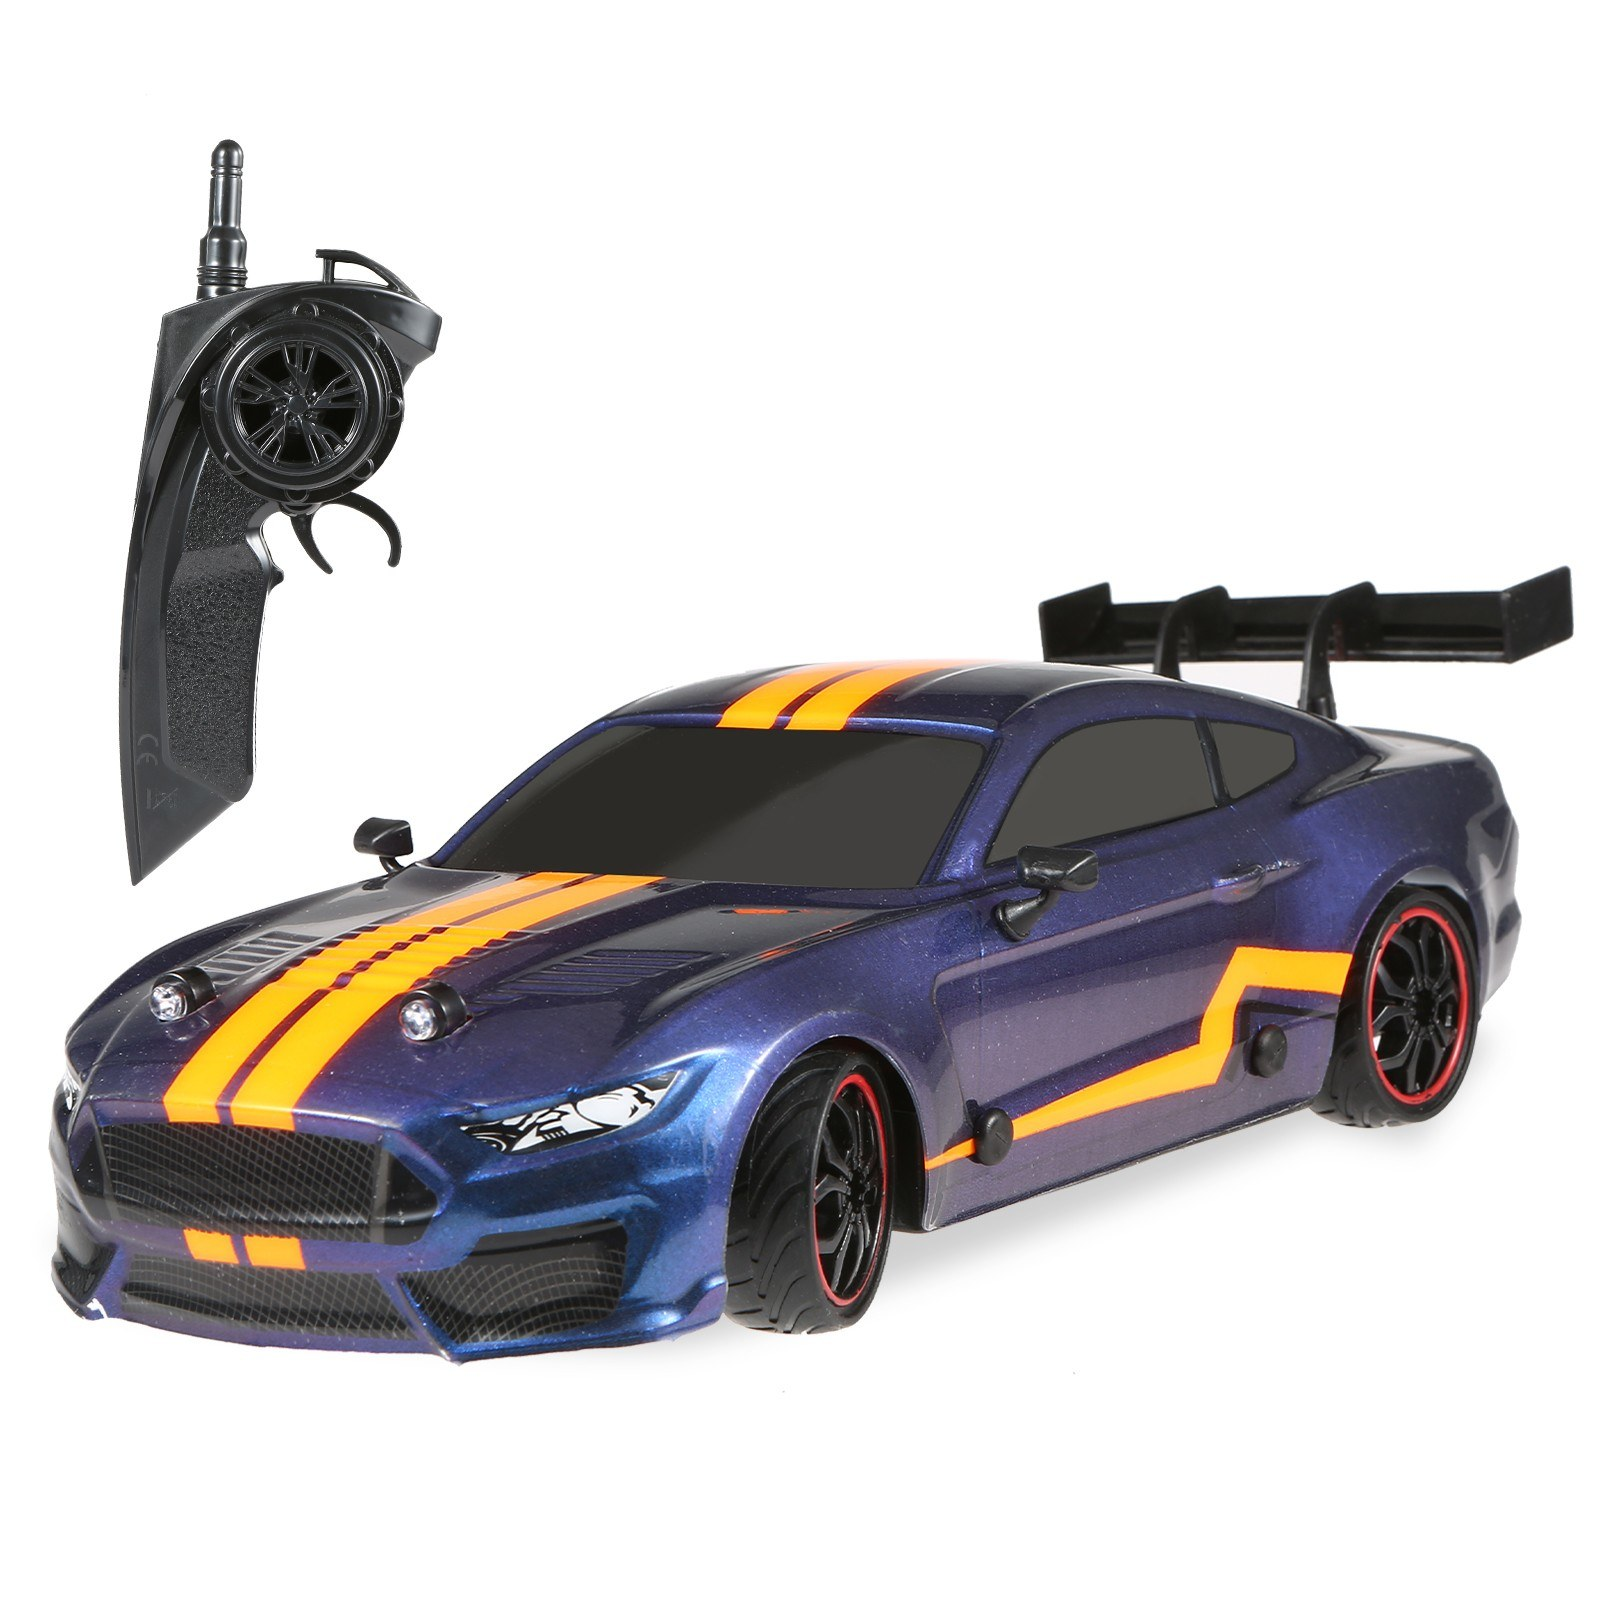 Tomtop - 55% OFF 80019 RC Drift Car 1/14 2.4GHz 4WD 35km/h RC Racing Car, Free Shipping $37.99